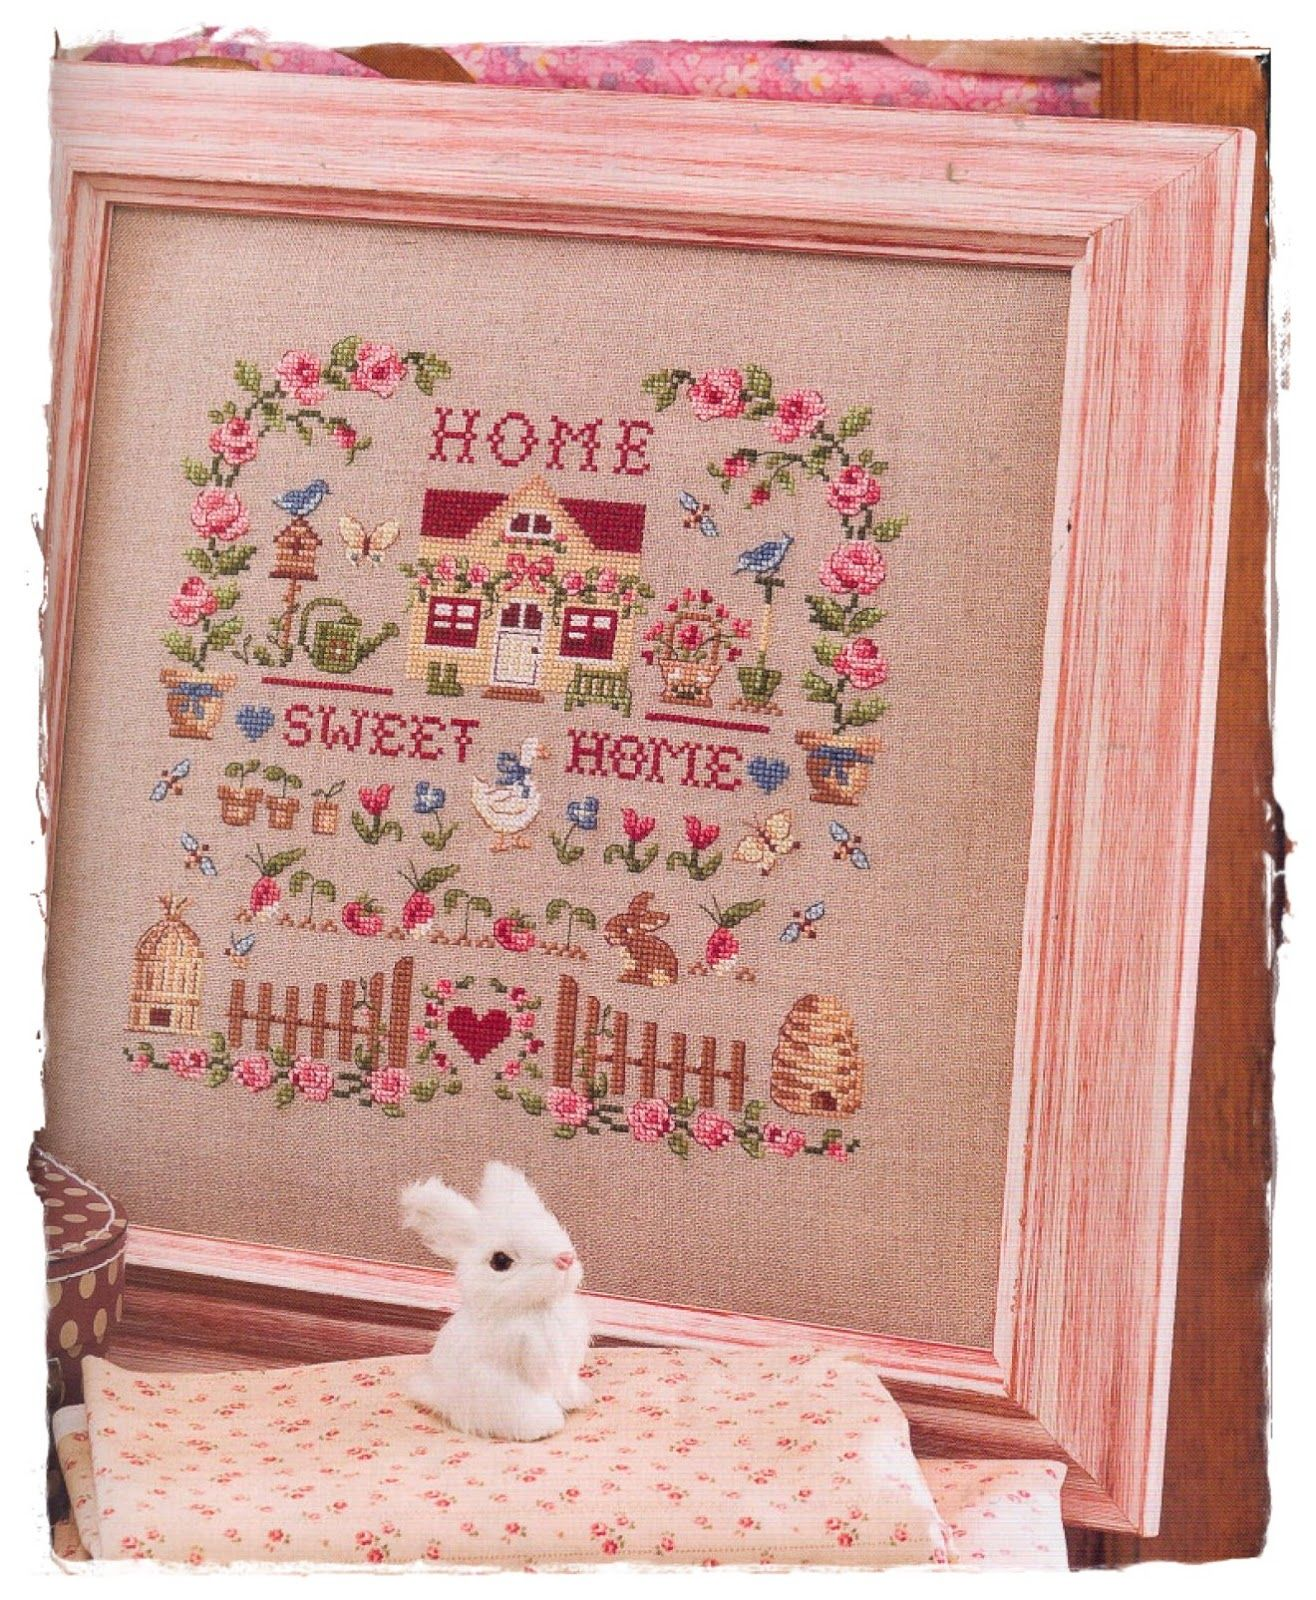 Handcraft Ana Paula: Home Sweet Home